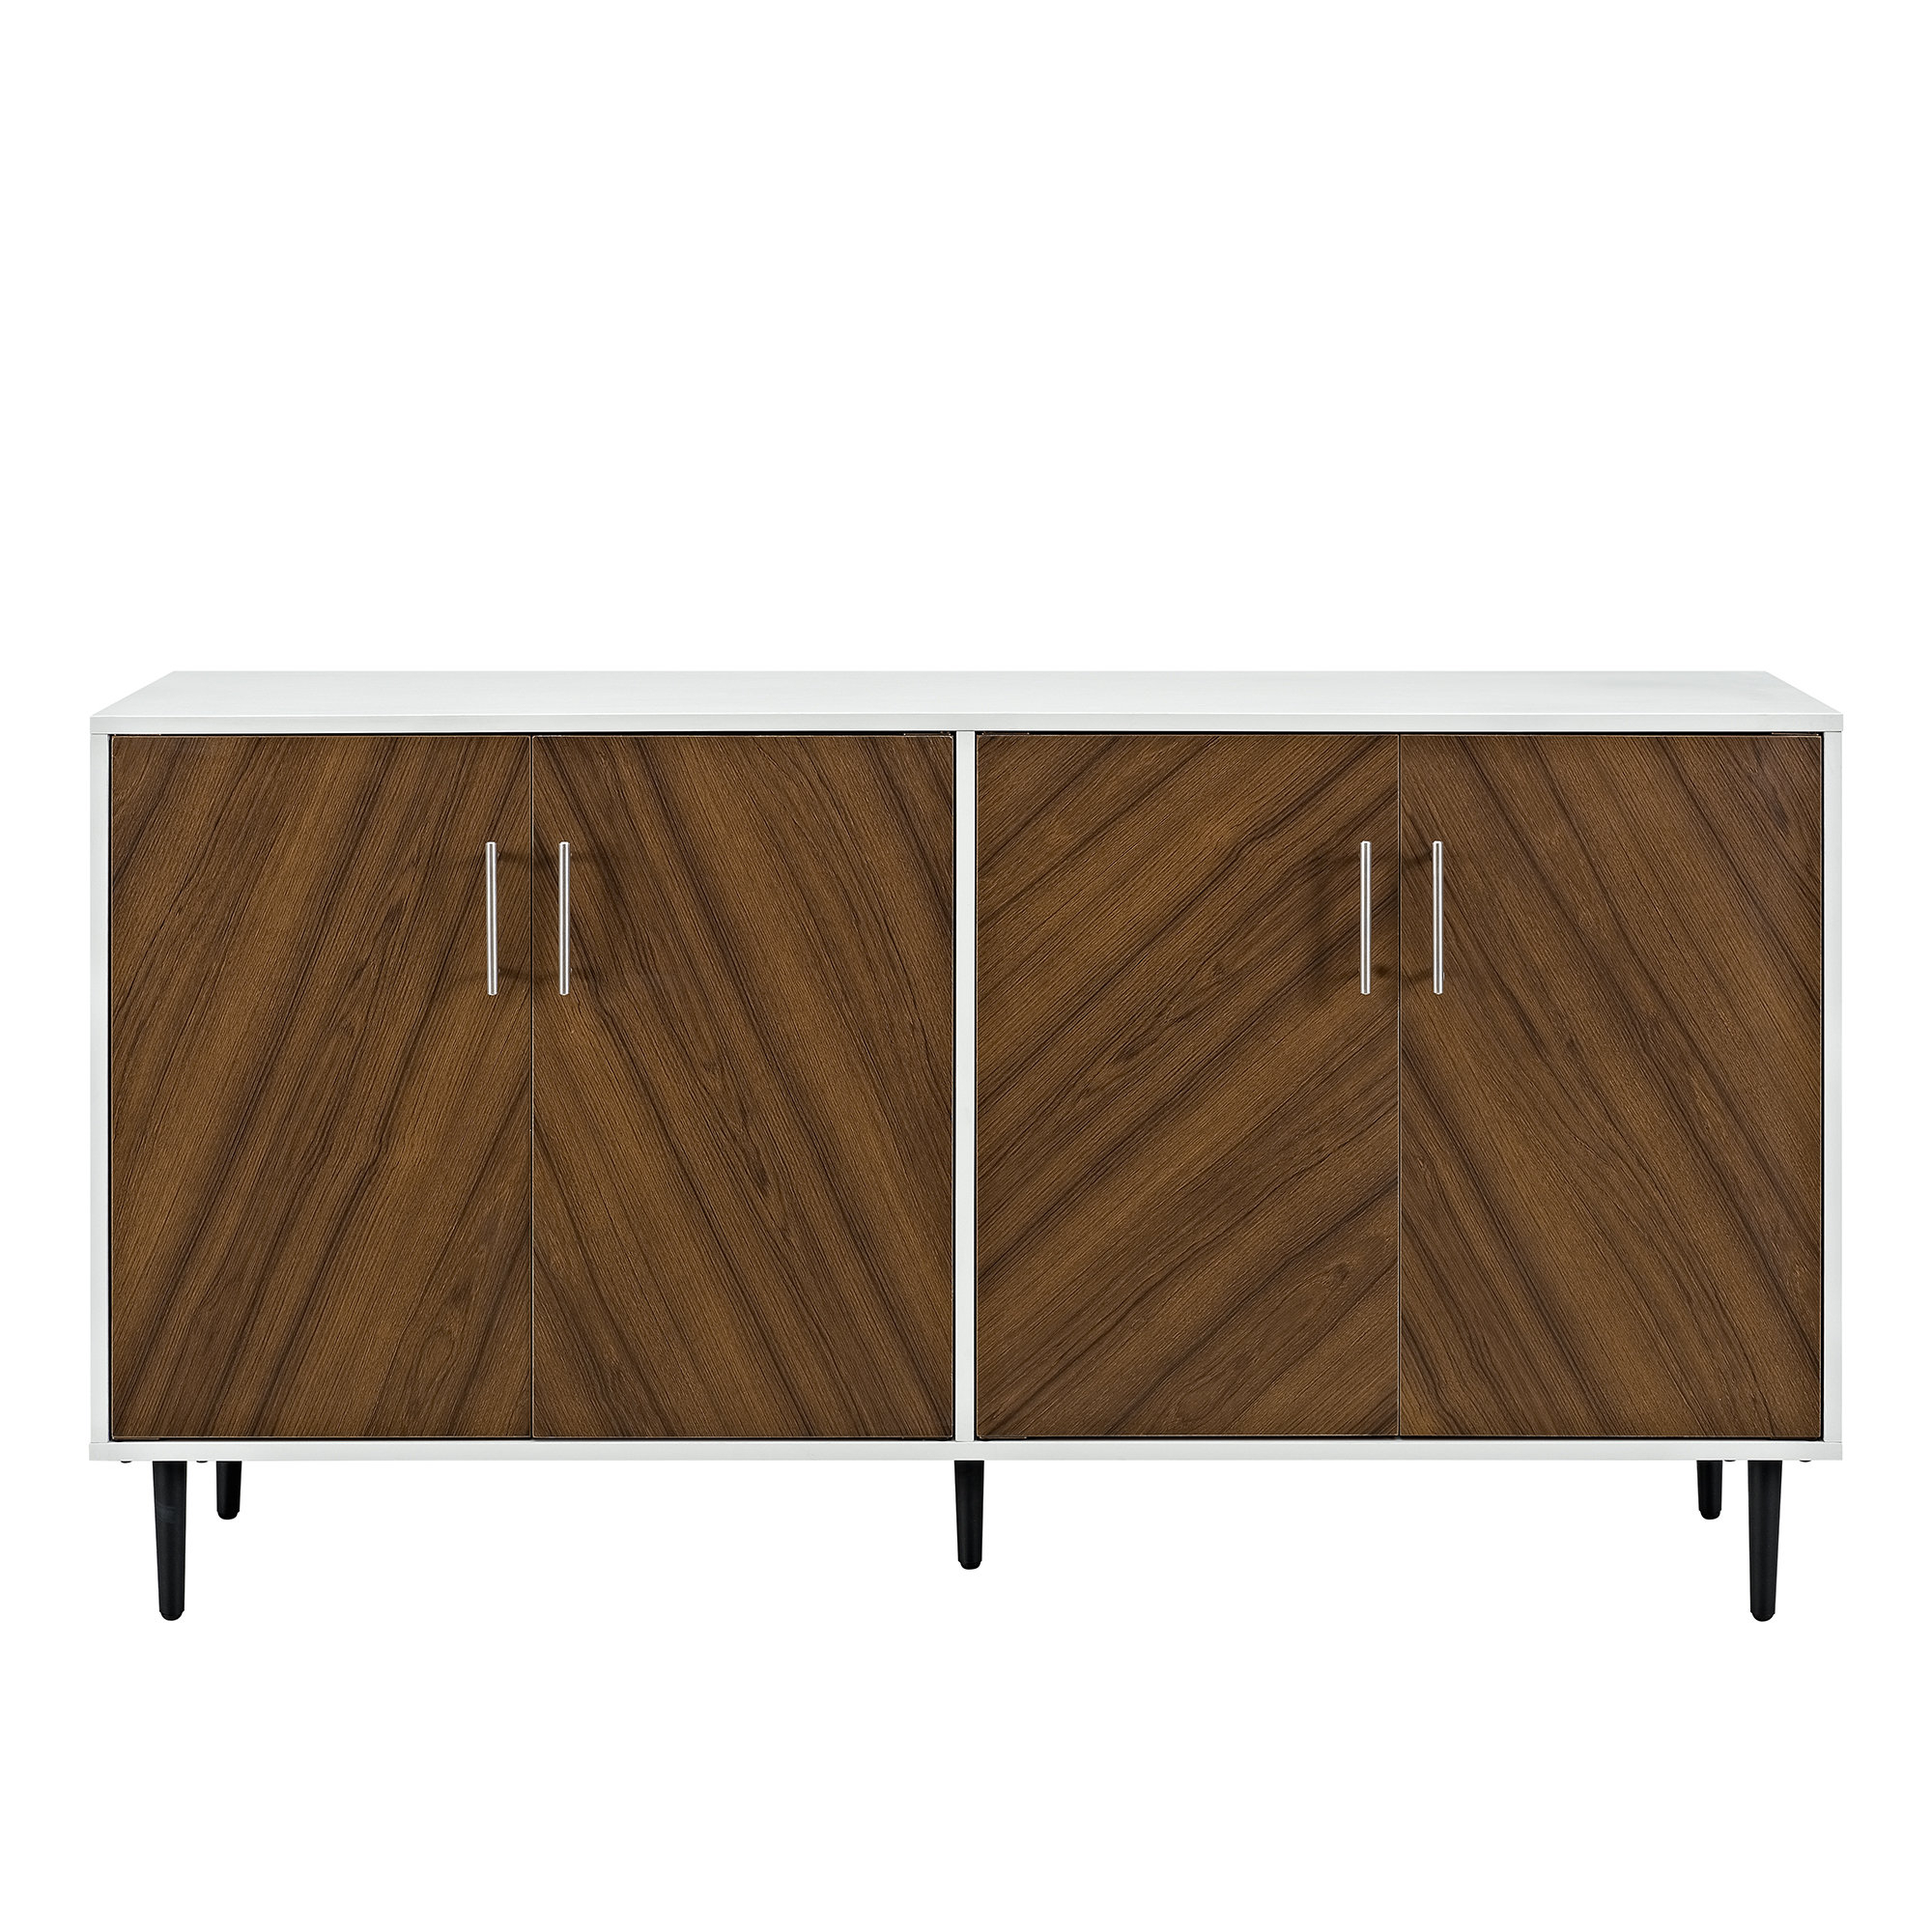 Modern Sideboard / Credenza Sideboards + Buffets | Allmodern Inside Armelle Sideboards (Image 19 of 30)